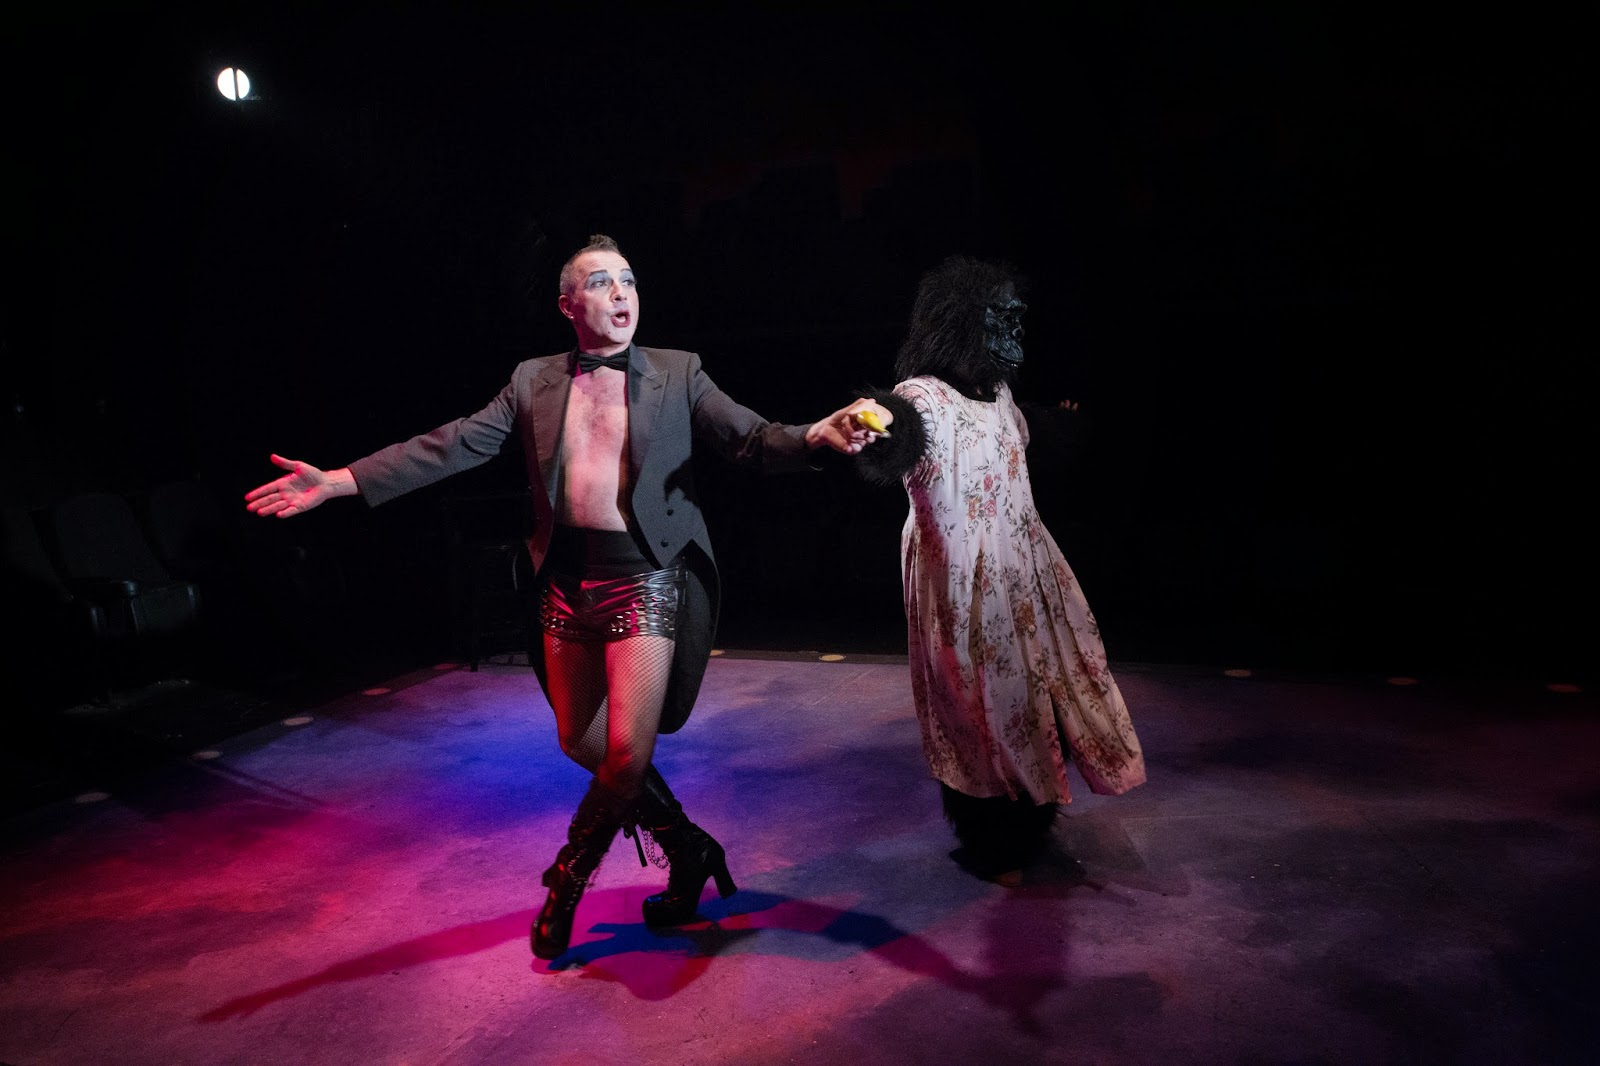 Terry Gadaire. Marna McLendon. Cabaret. 2014. Desert Stages Theatre. Photo by Heather Butcher.